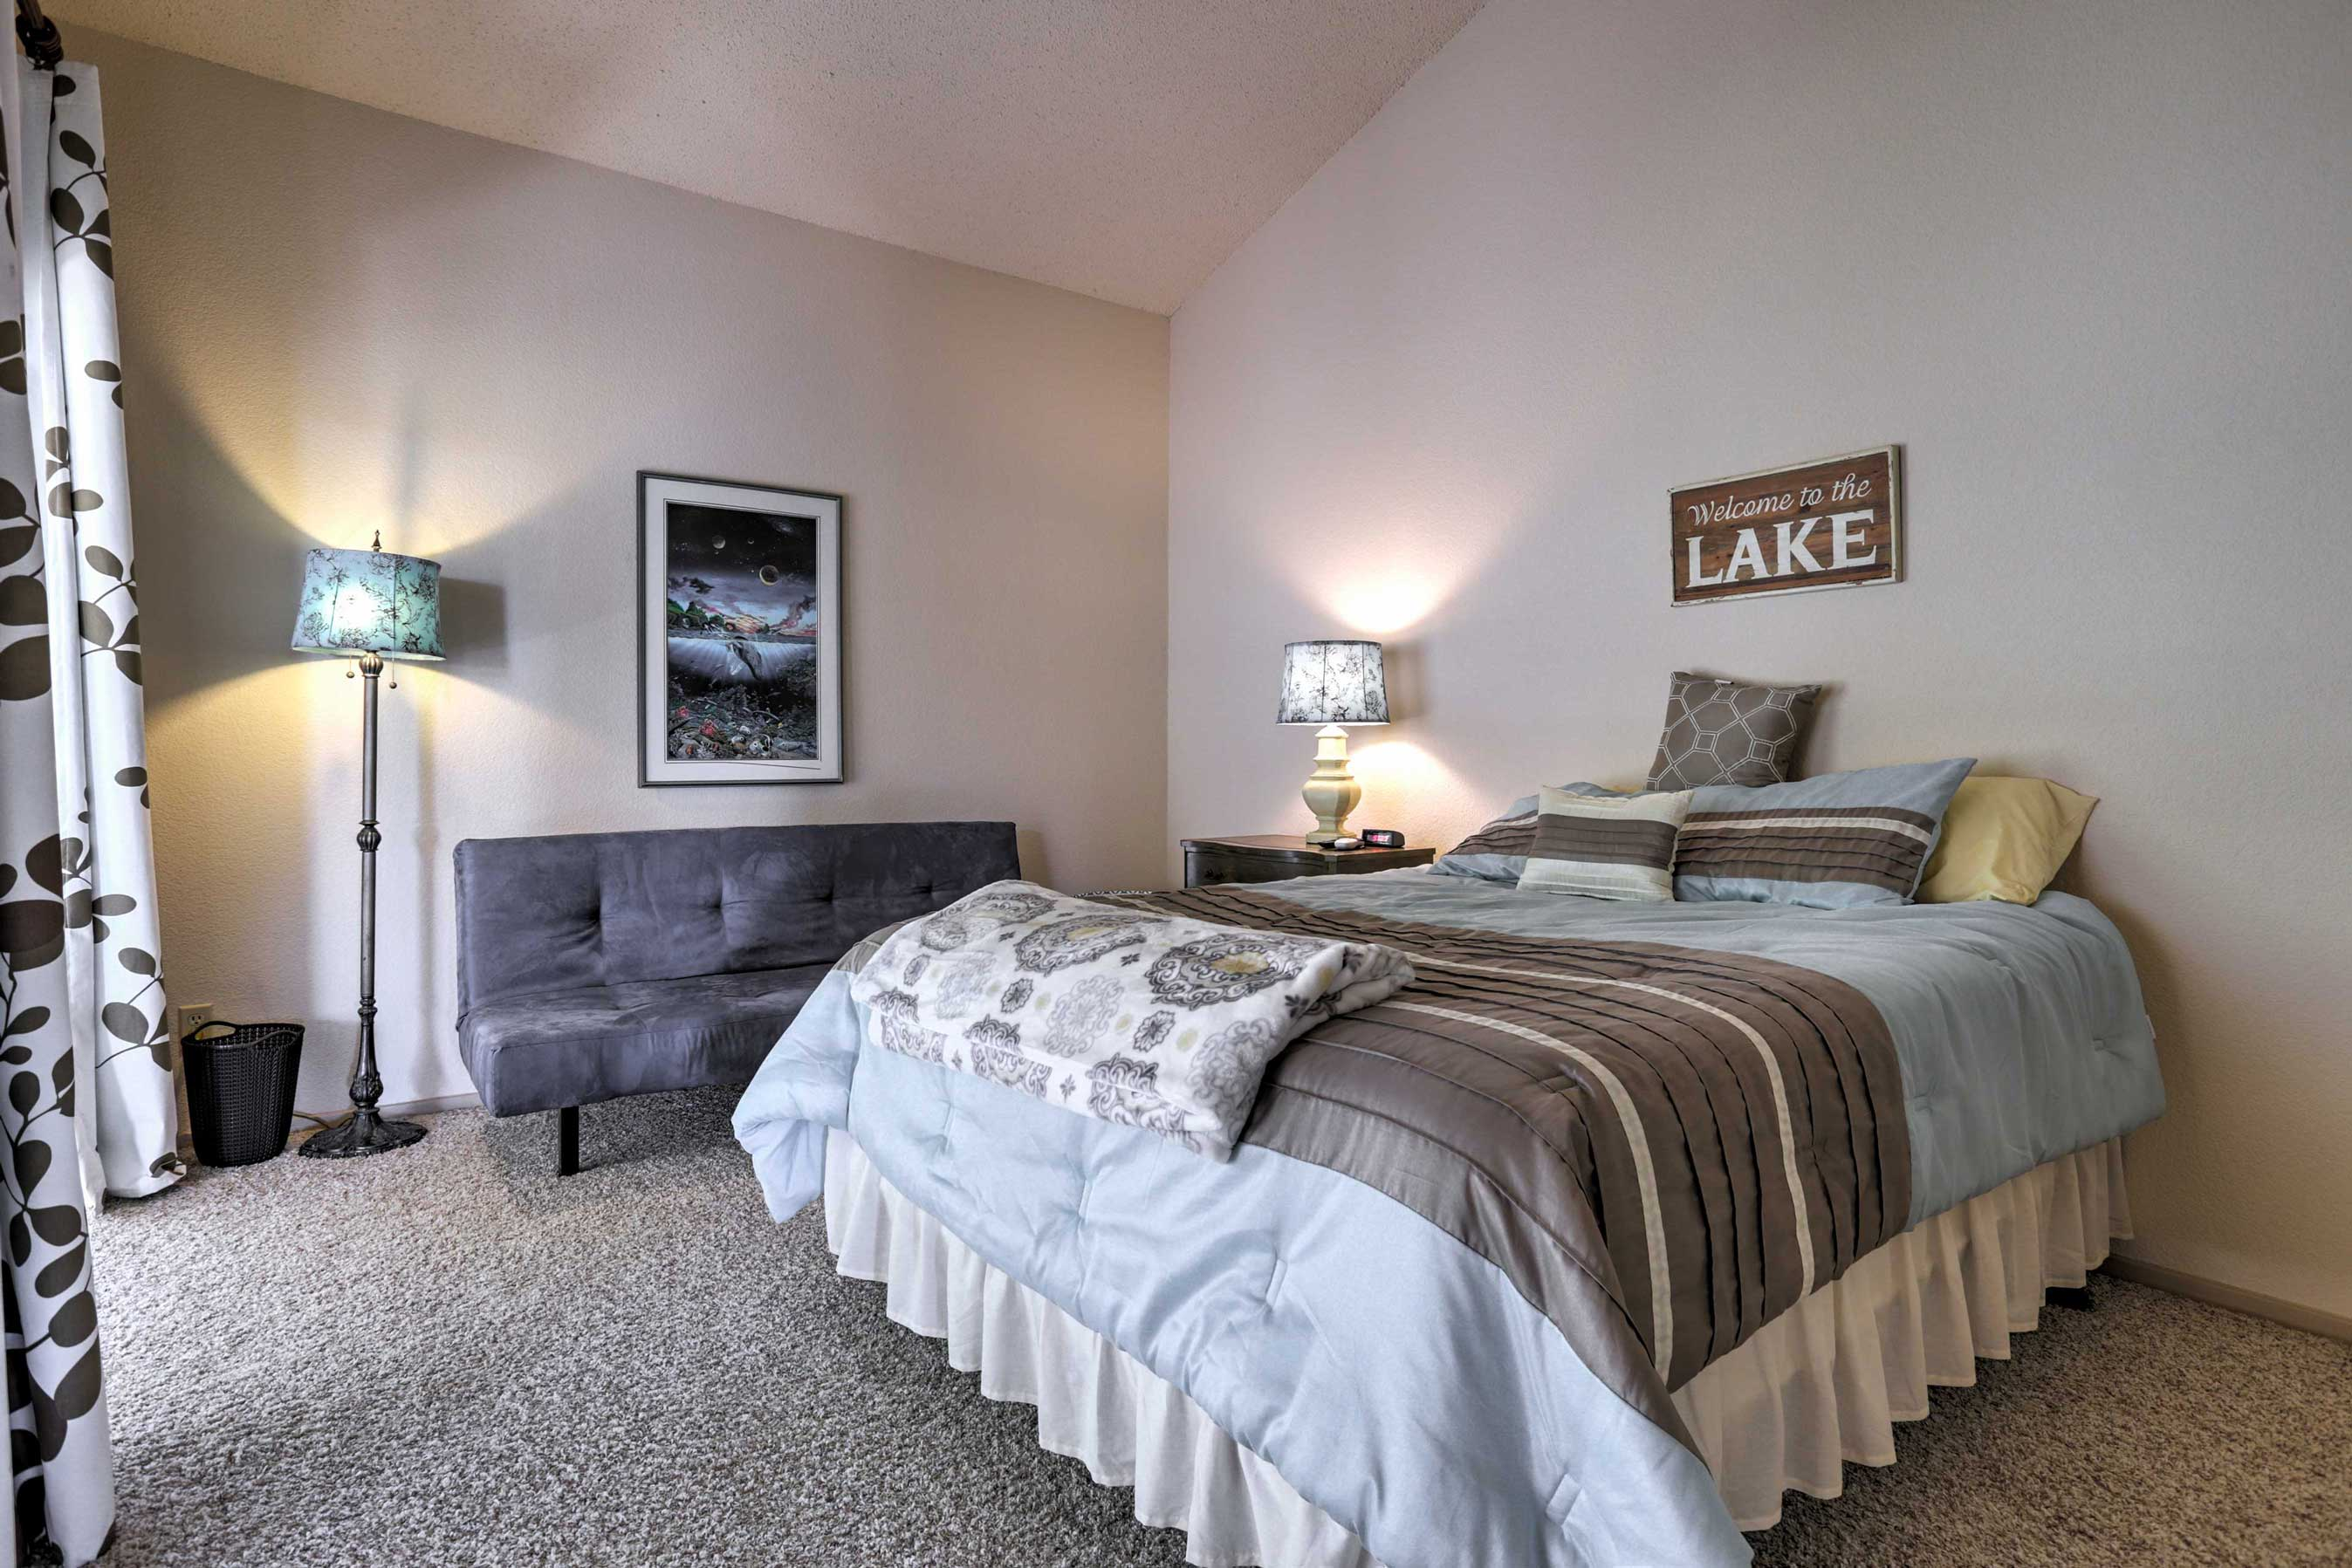 The master bedroom has a queen-sized bed and a futon.